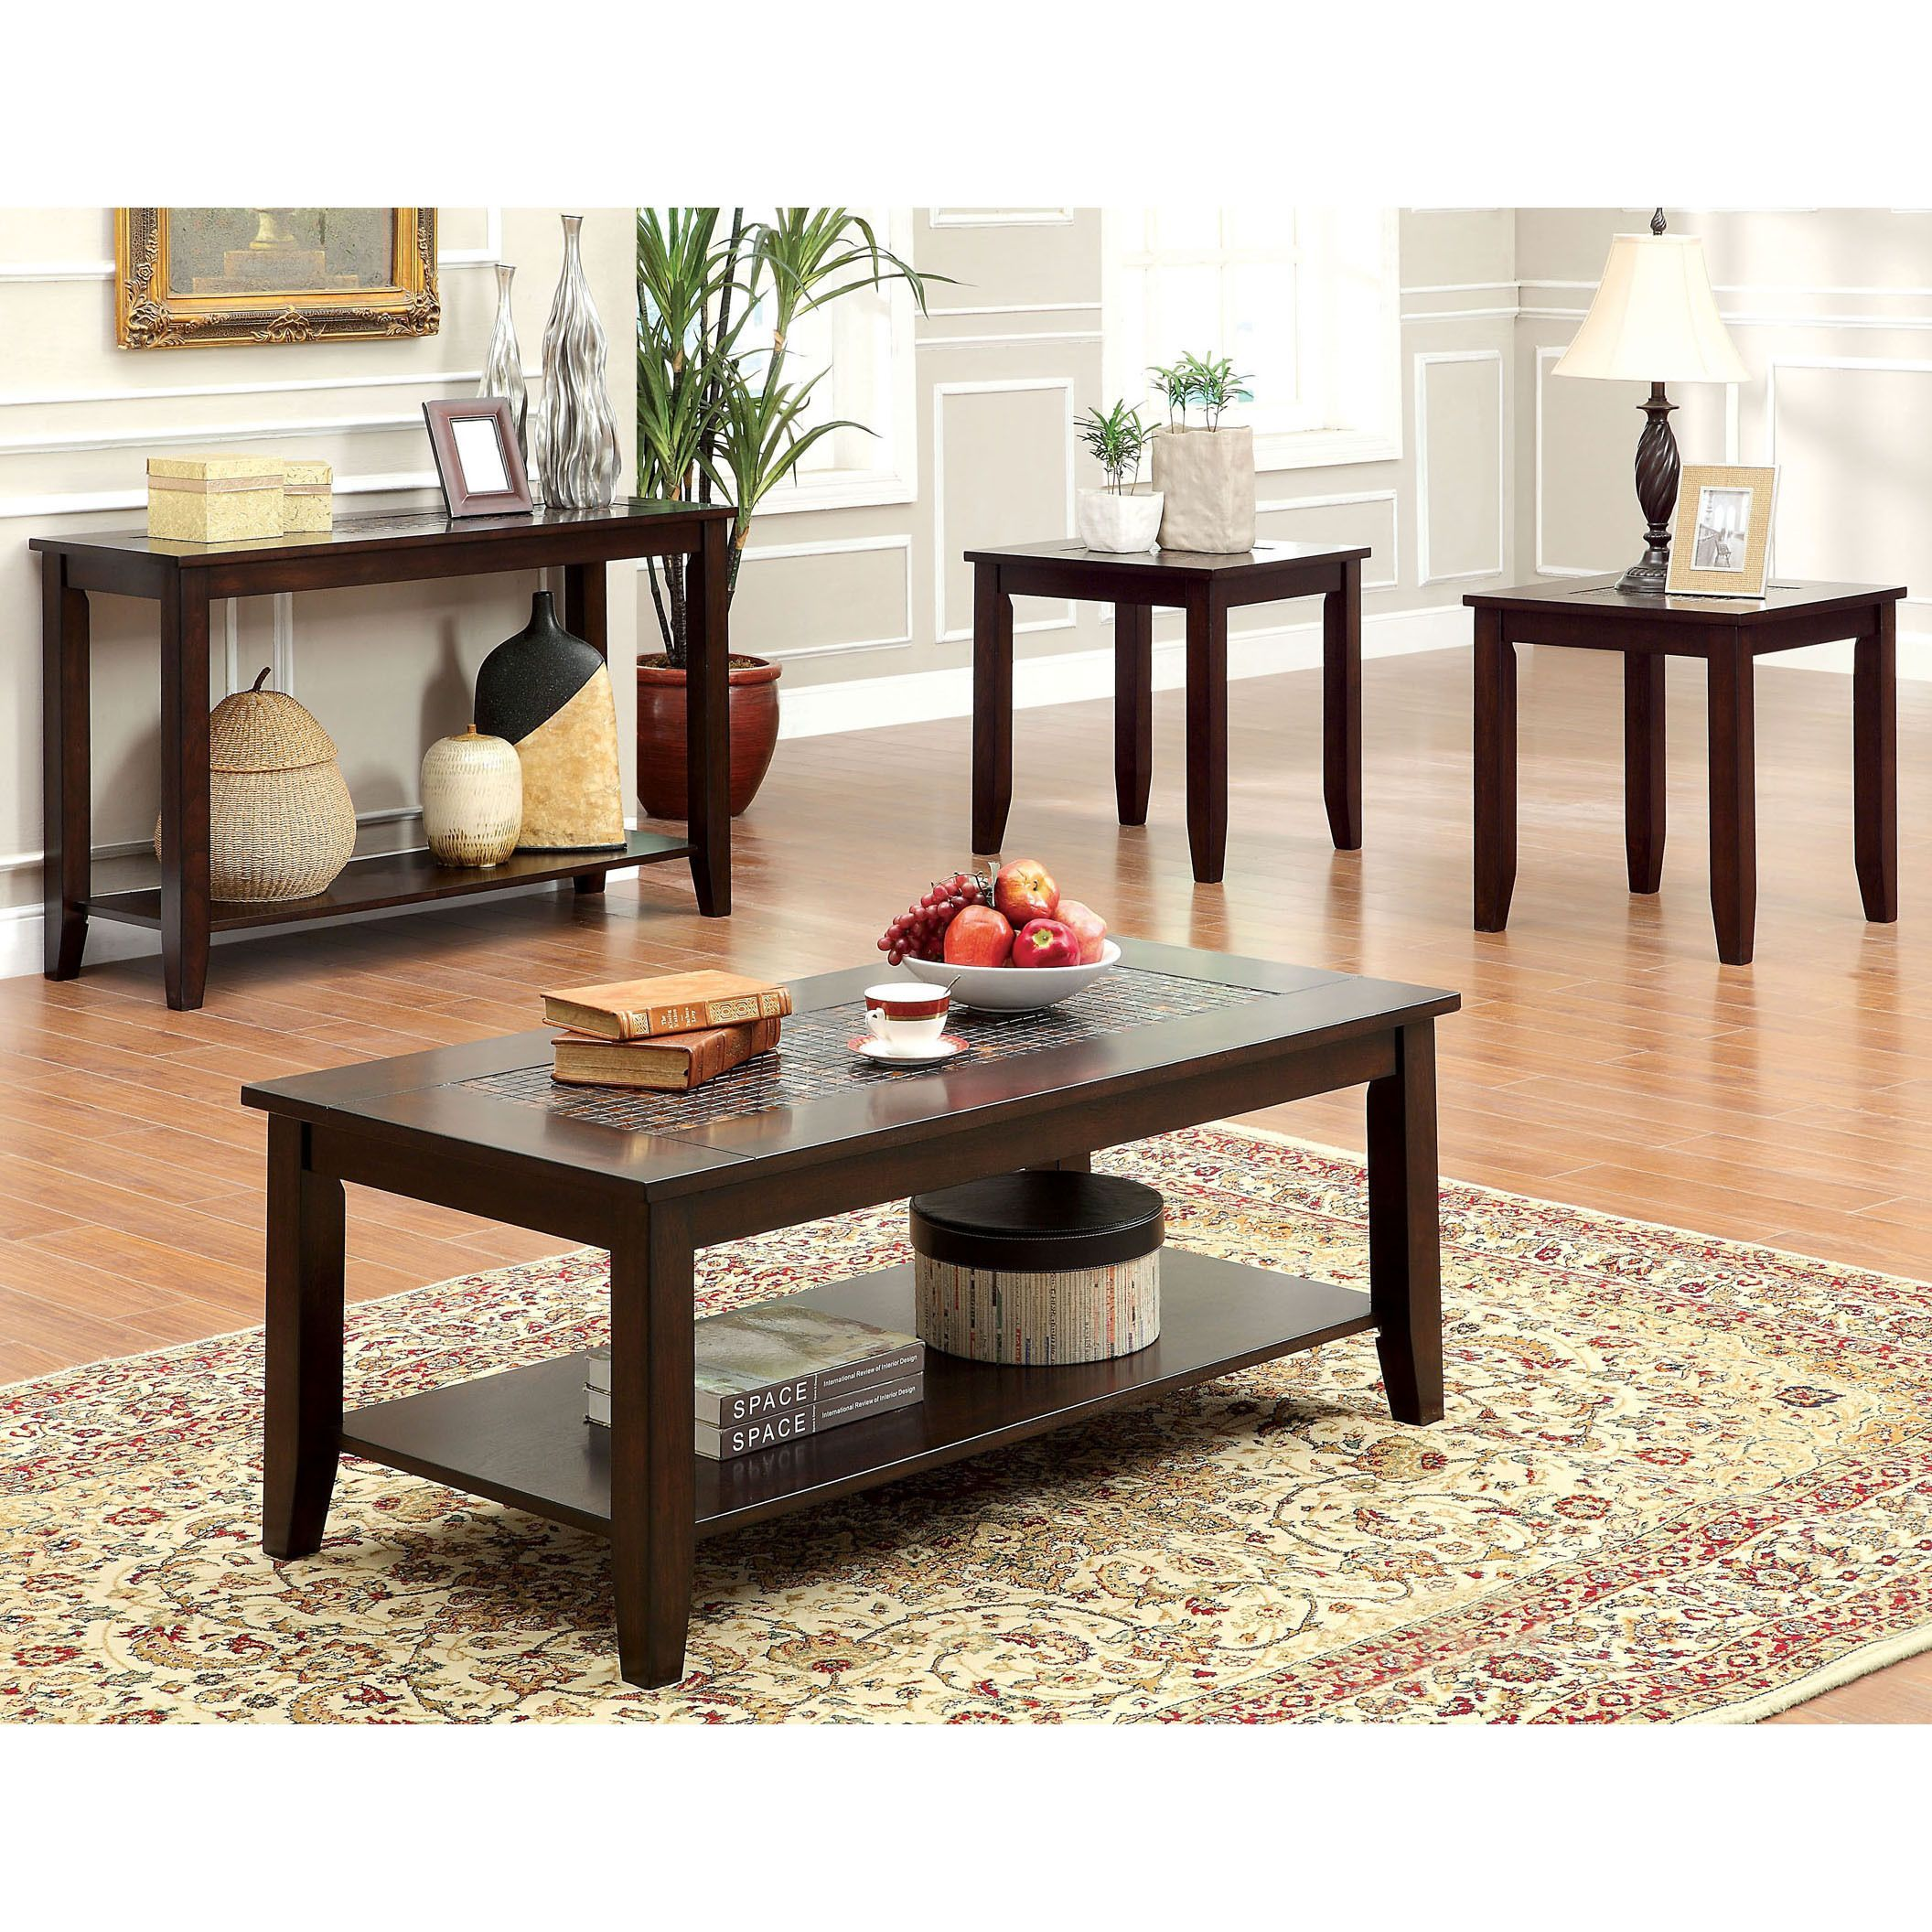 Our Best Living Room Furniture Deals Coffee Table Living Room Coffee Table Coffee Table With Storage [ 2112 x 2112 Pixel ]